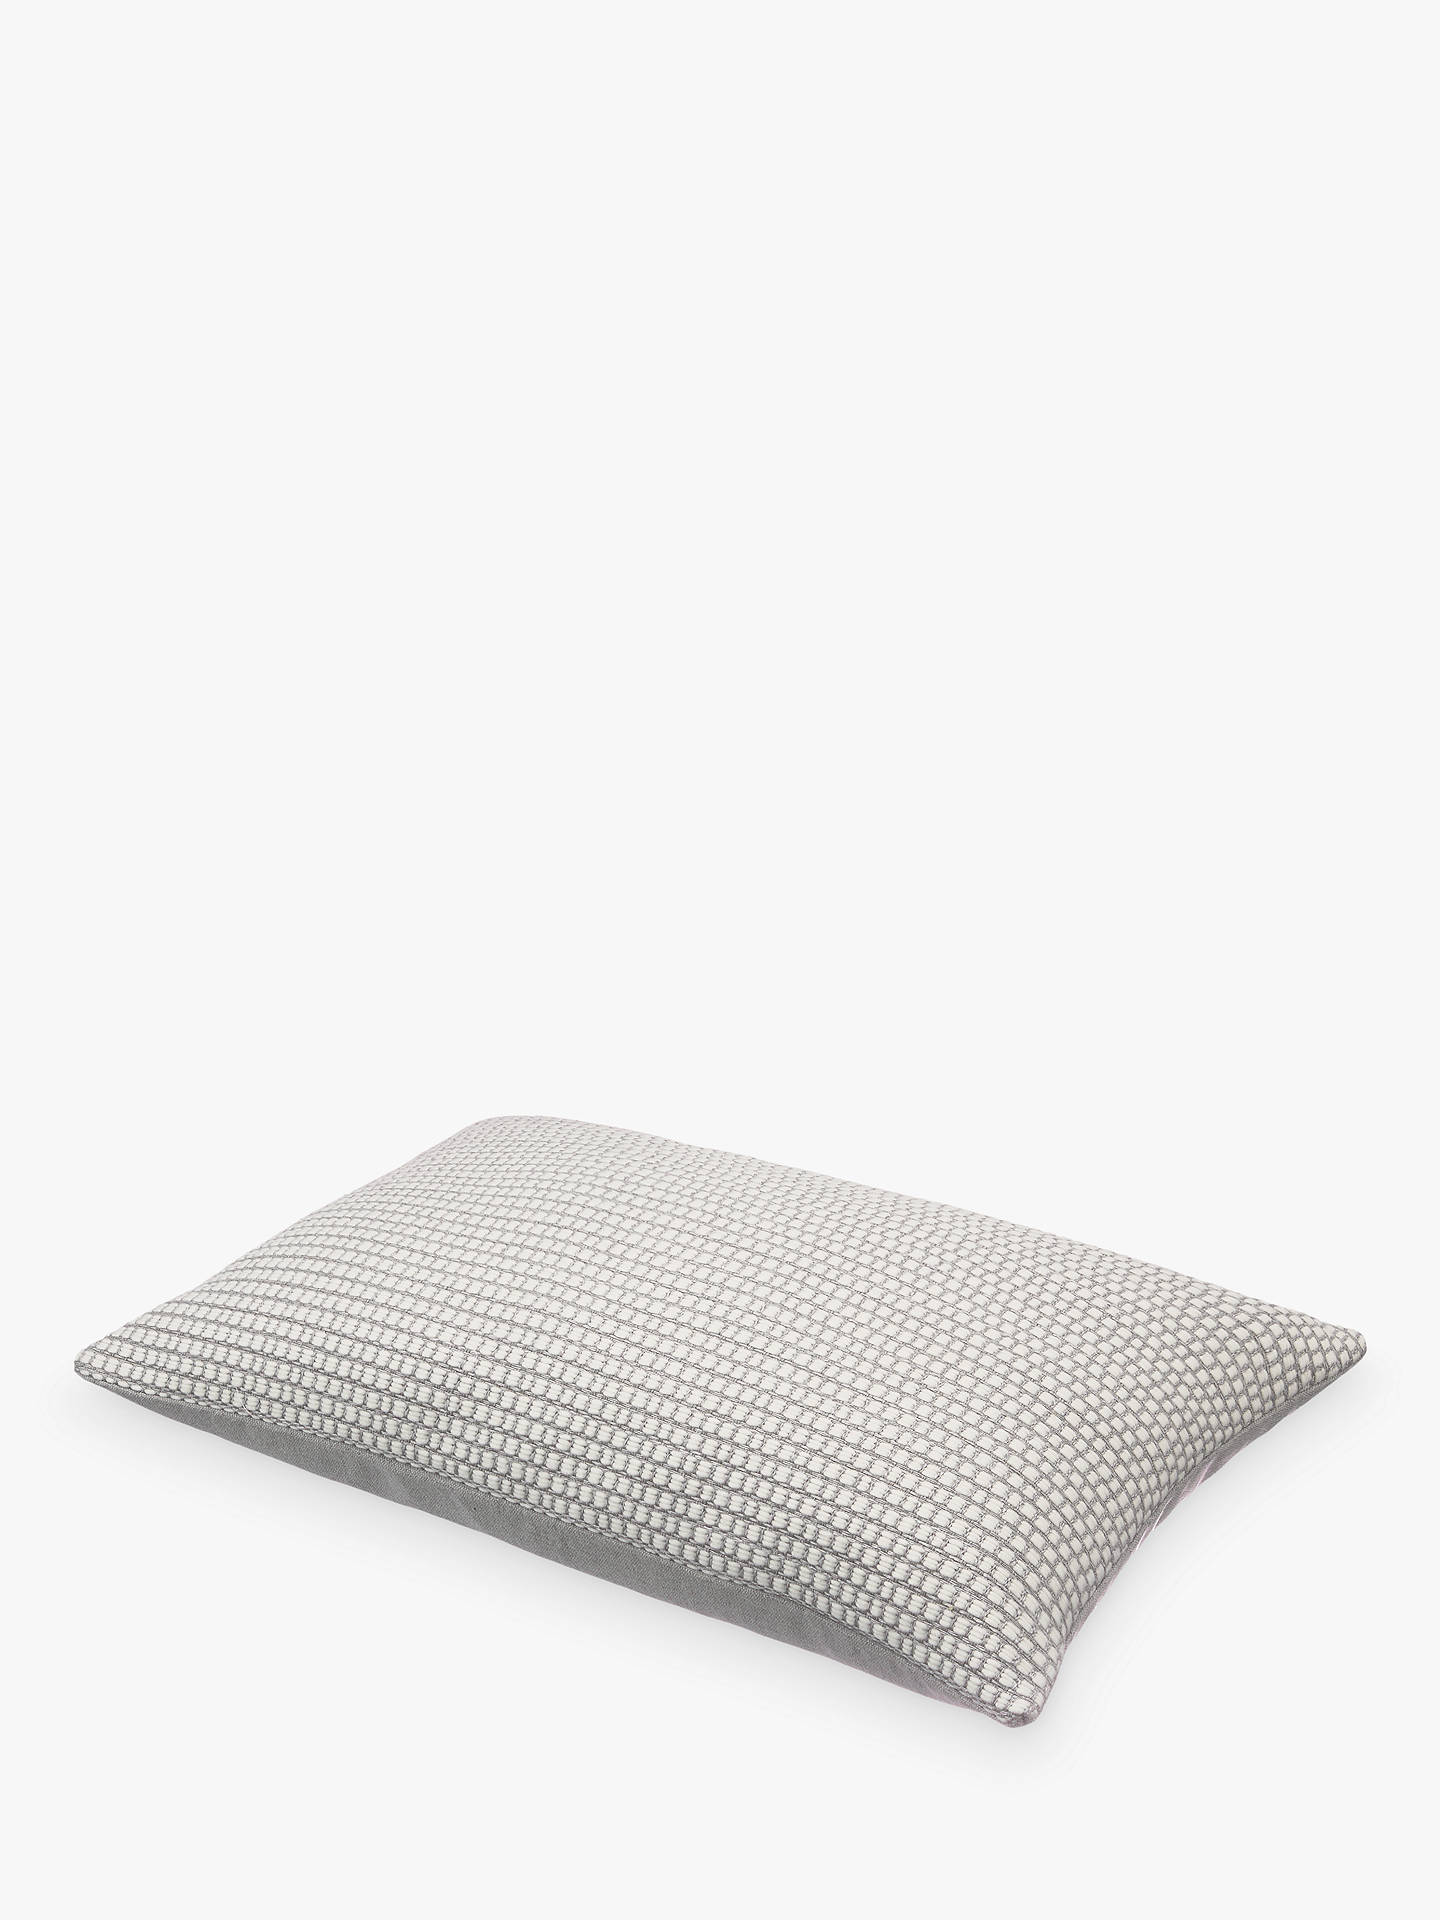 BuyDesign Project by John Lewis No.050 Cushion, Blue Grey Online at johnlewis.com